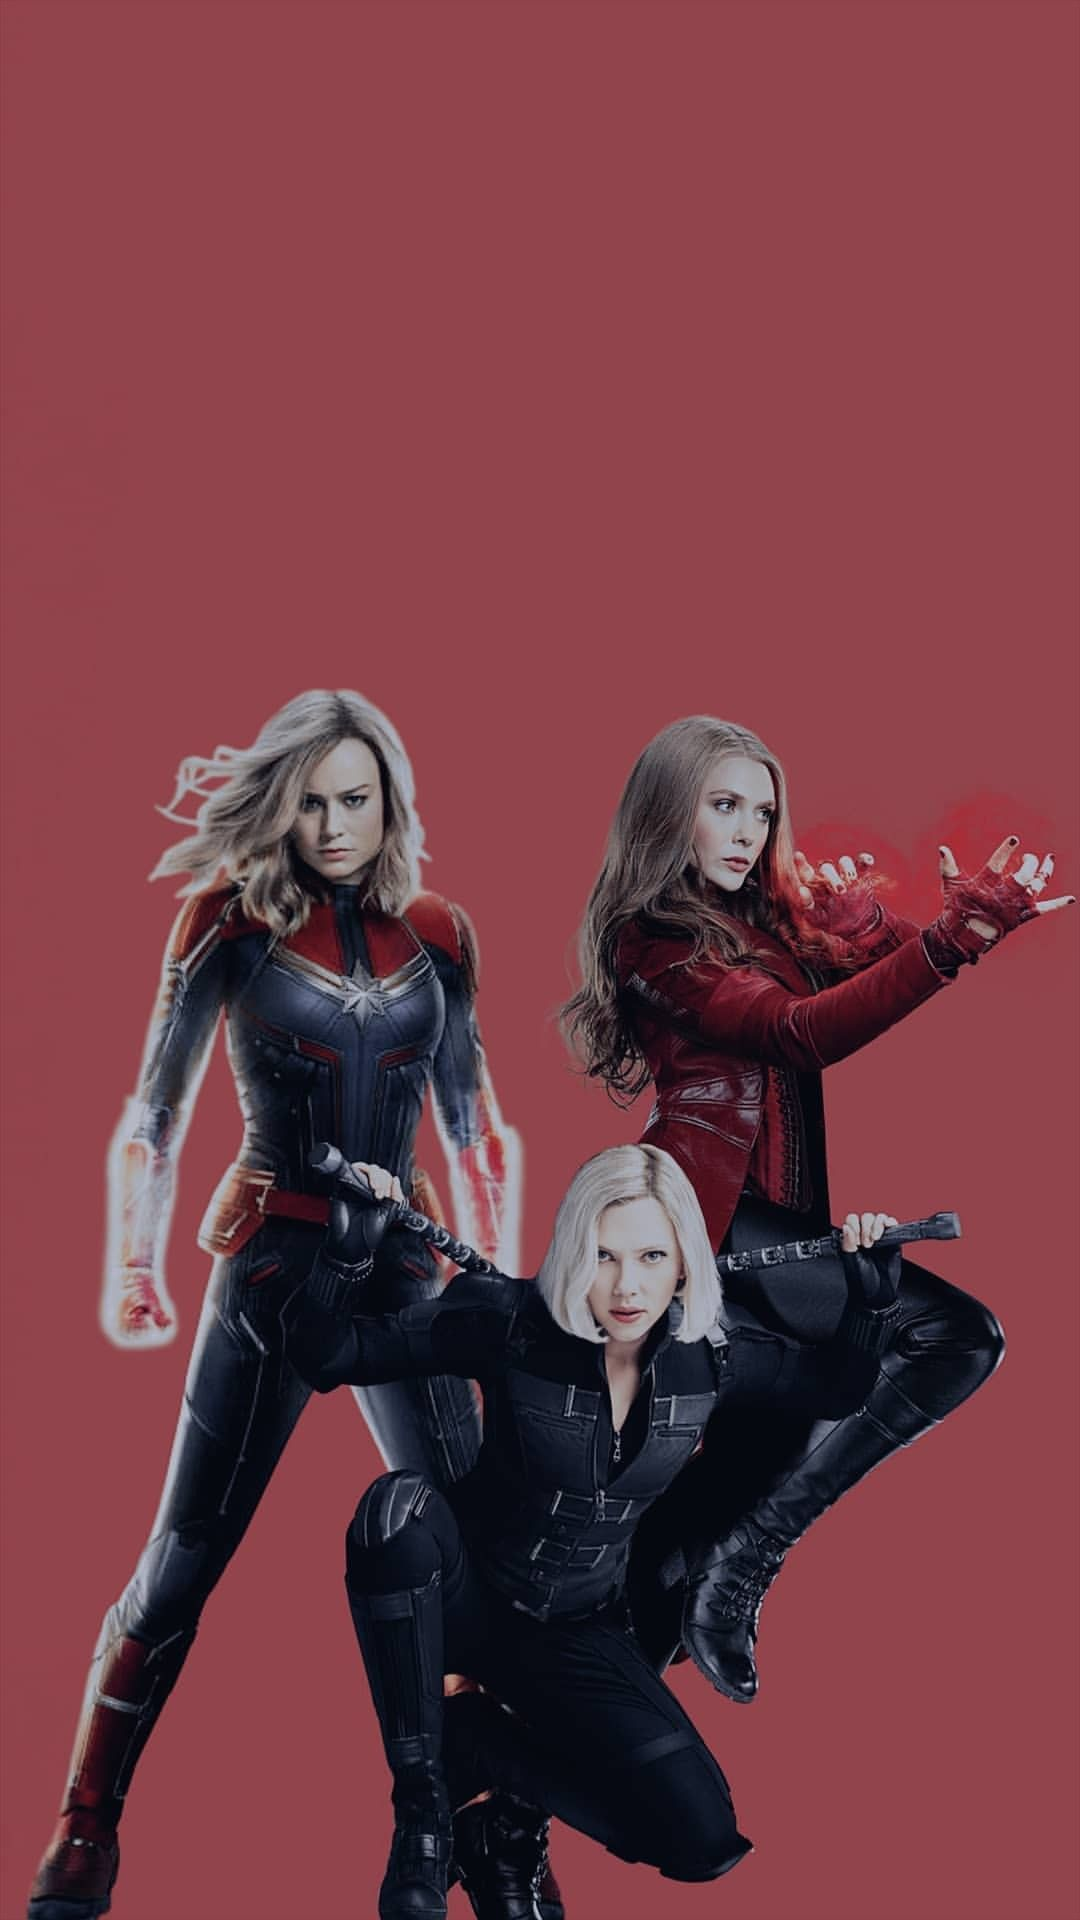 Captain Marvel Scarlet Witch And Black Widow Black Widow Marvel Black Widow Wallpaper Captain Marvel